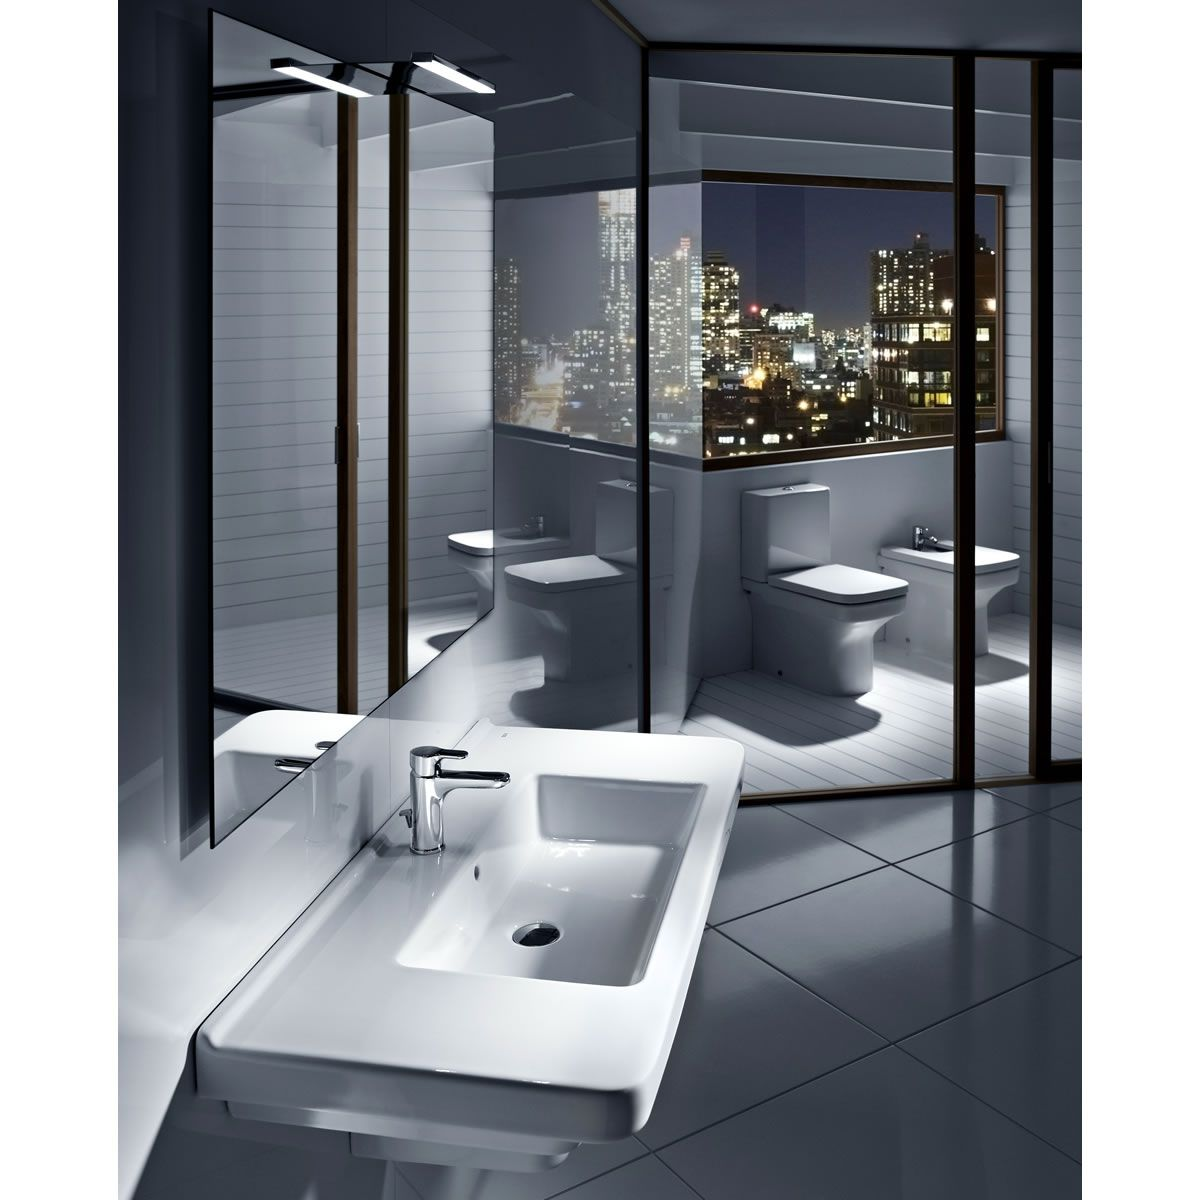 Roca dama n floorstanding open back bidet uk bathrooms for Roca dama toilet